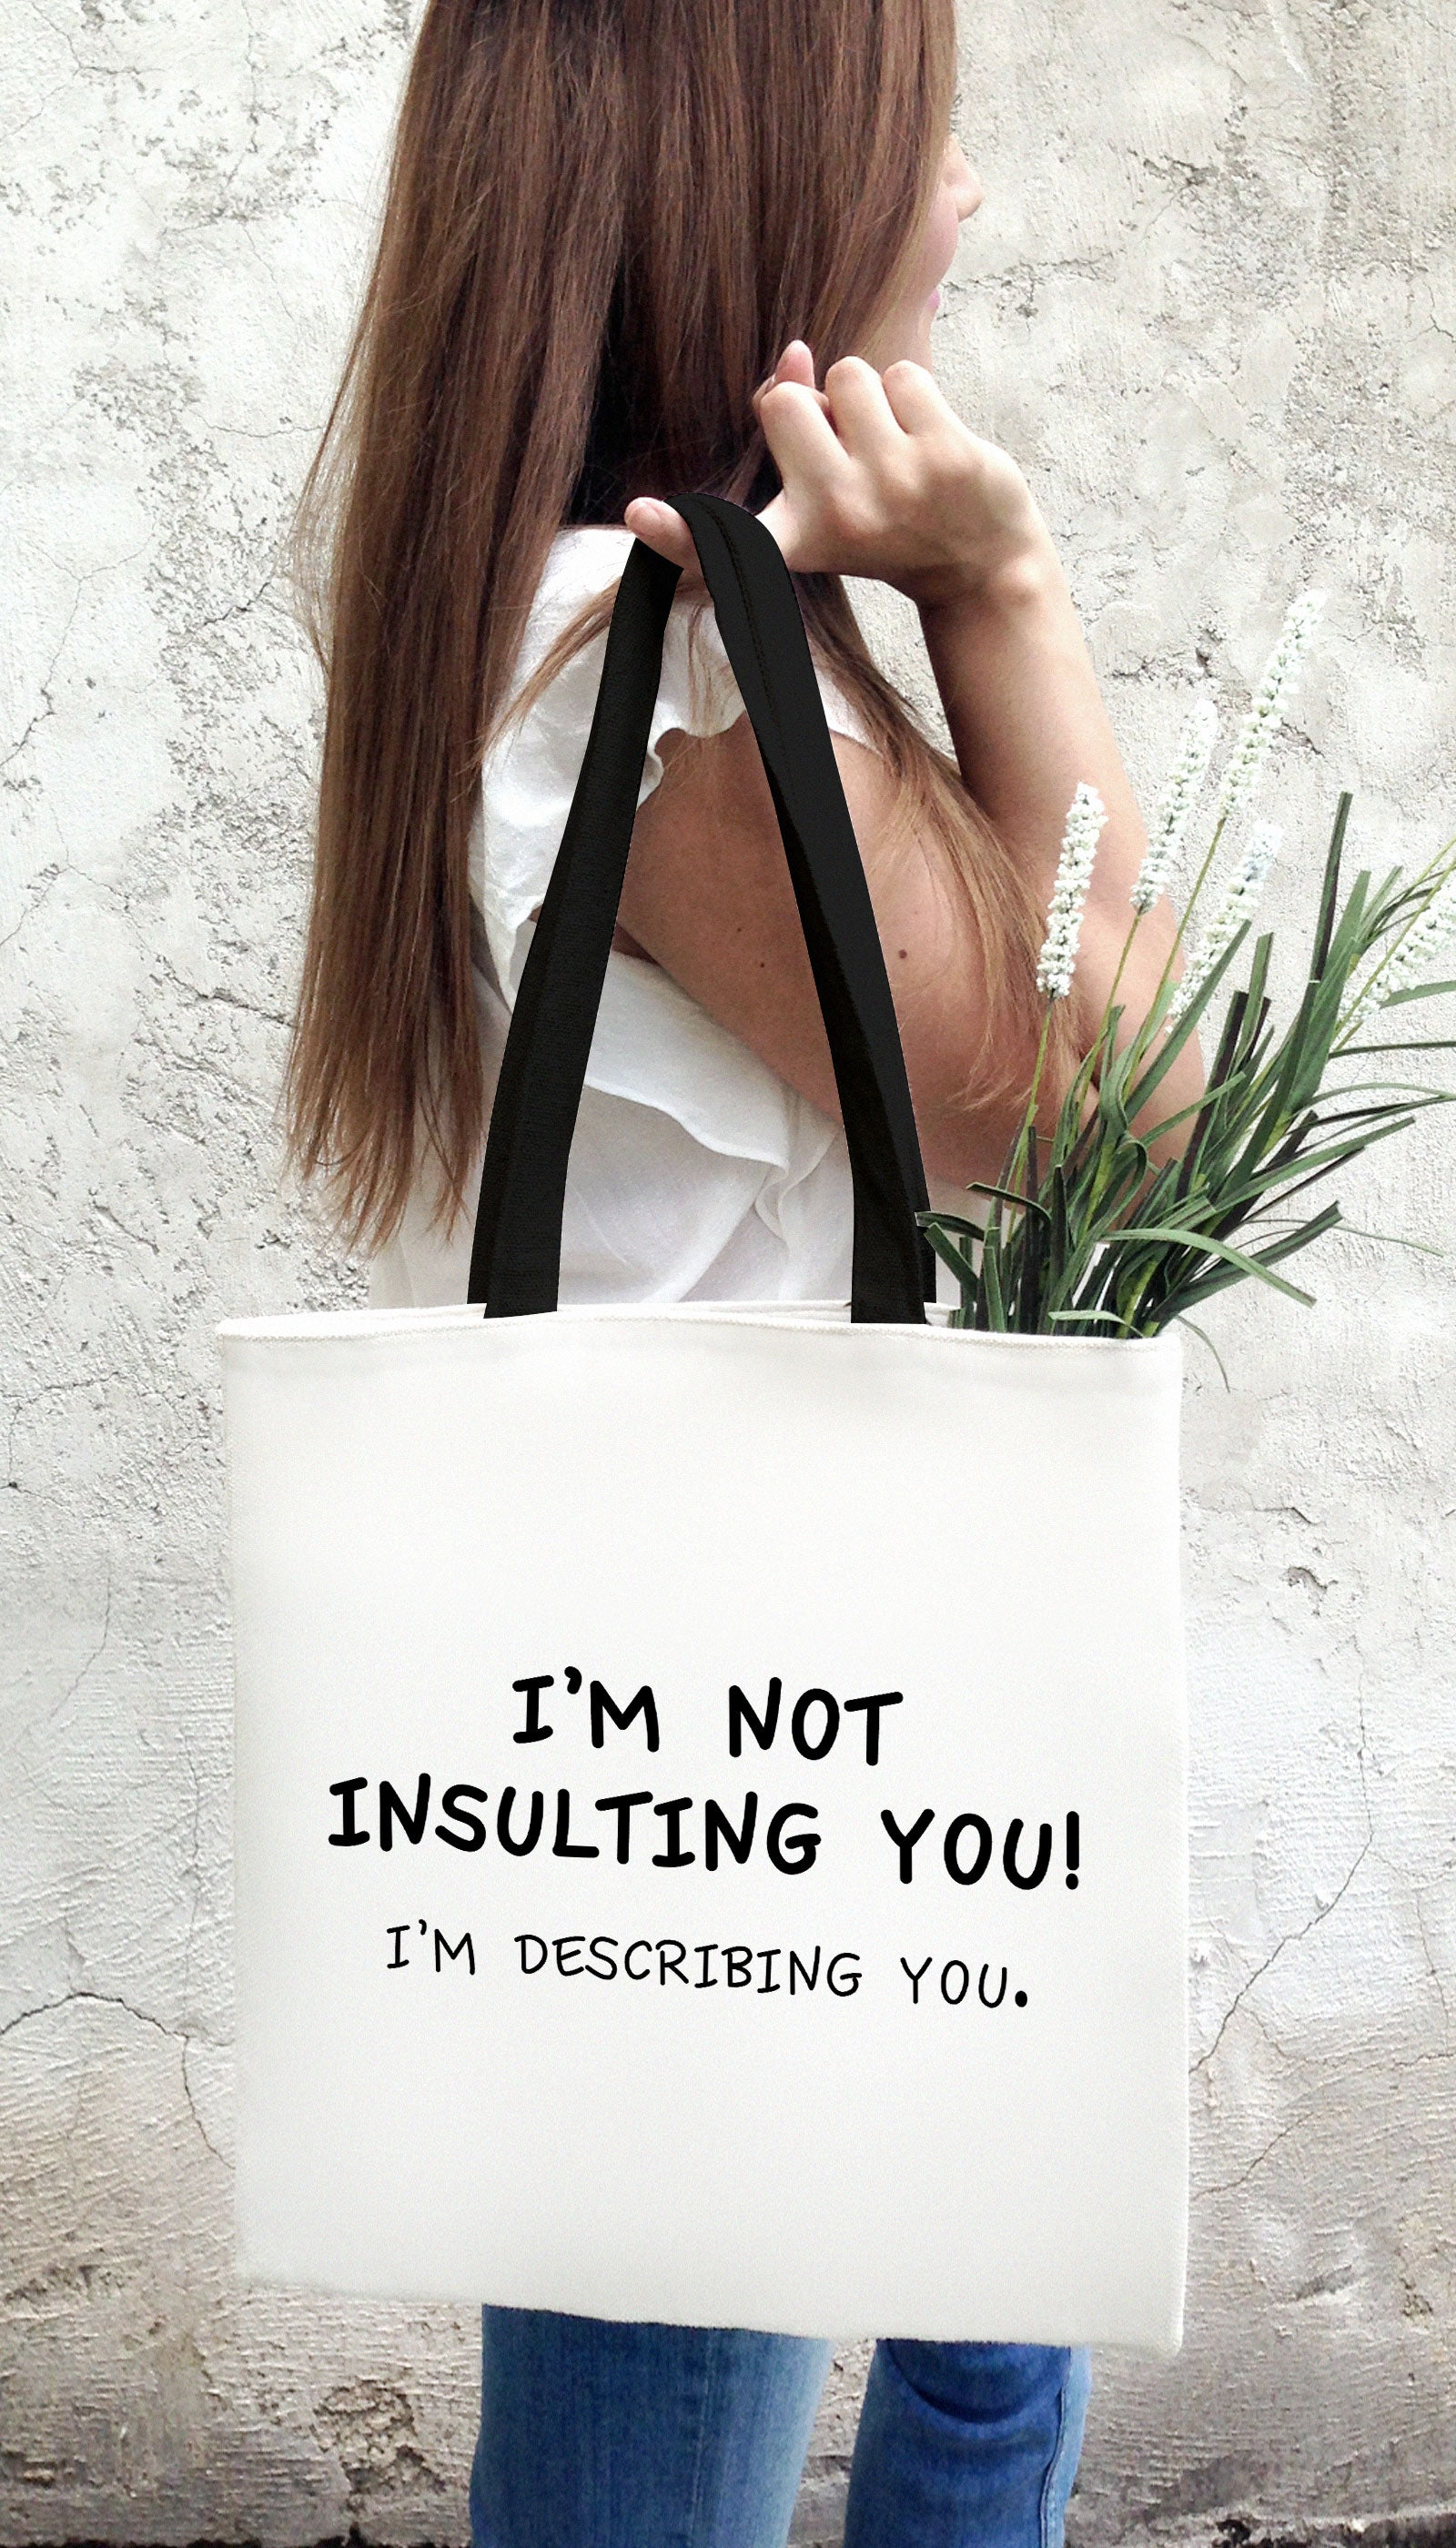 I'm Not Insulting You! I'm Describing You Funny & Clever Tote Bag Gift | Sarcastic ME